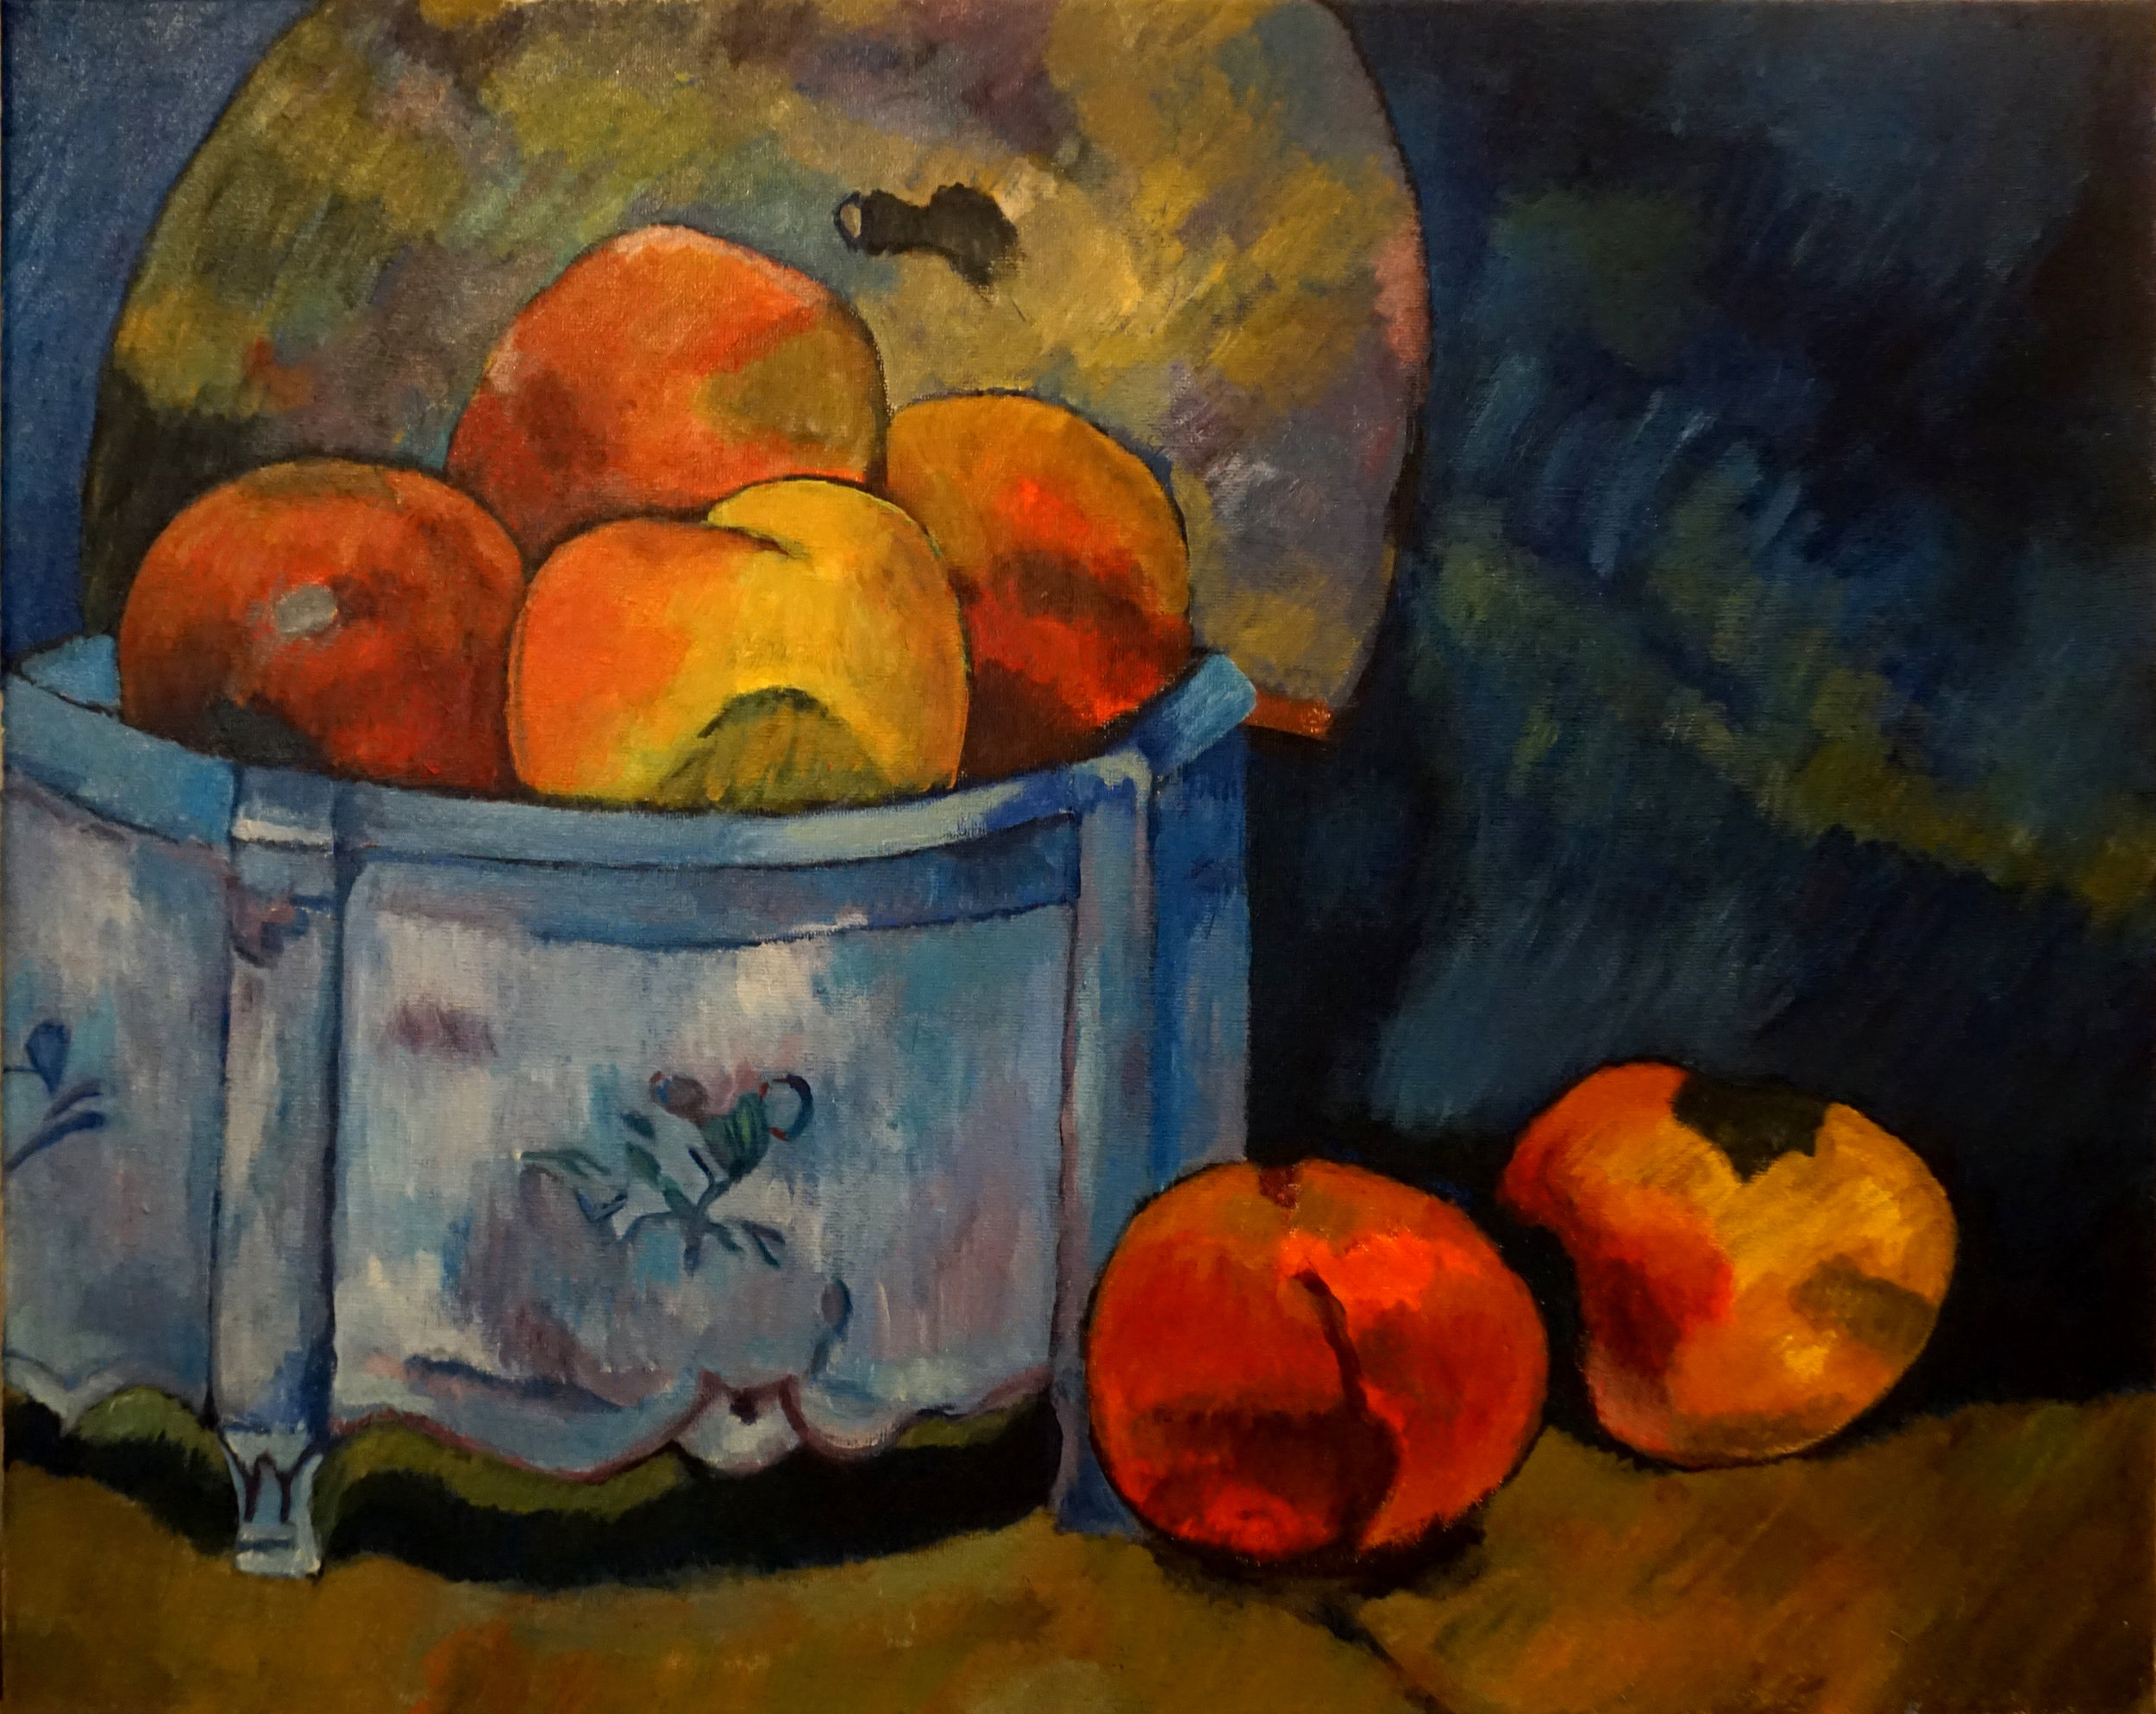 IMITATION OF GAUGUIN'S STILL LIFE WITH PEACHES | 芸術作品